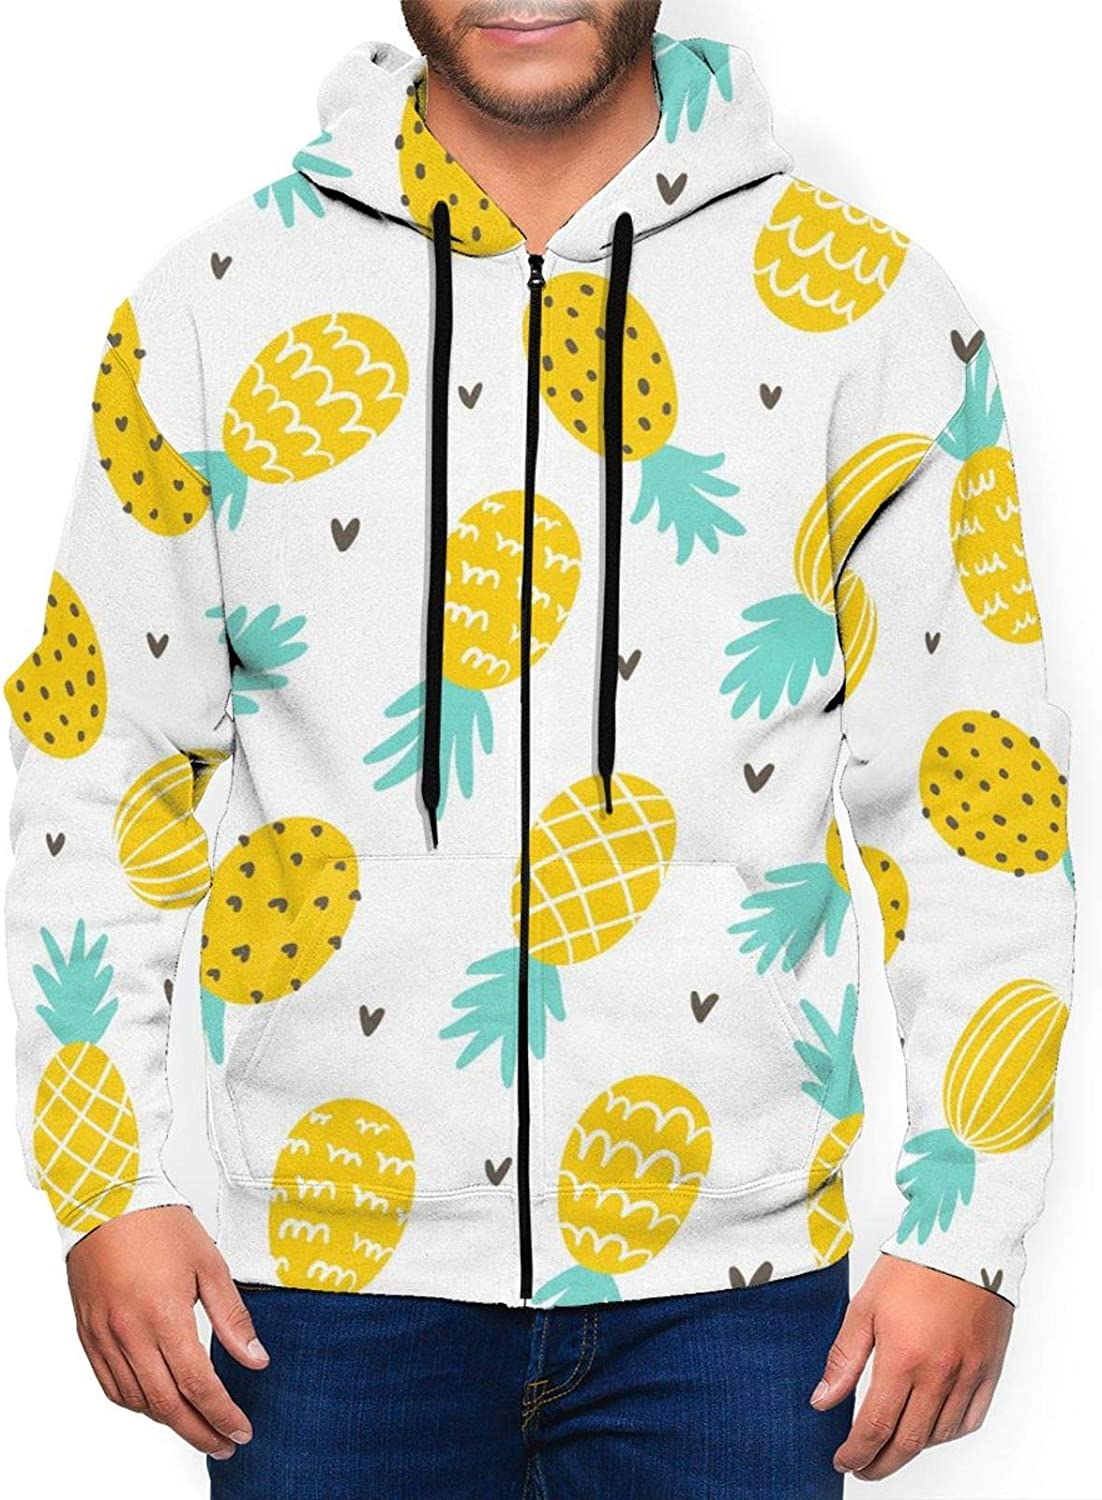 Lanbay Men's Hoodies Sweater Pineapple and Hearts Hoodie 3D Printed Jacket Zipper Pullover Sweatshirt Shirt